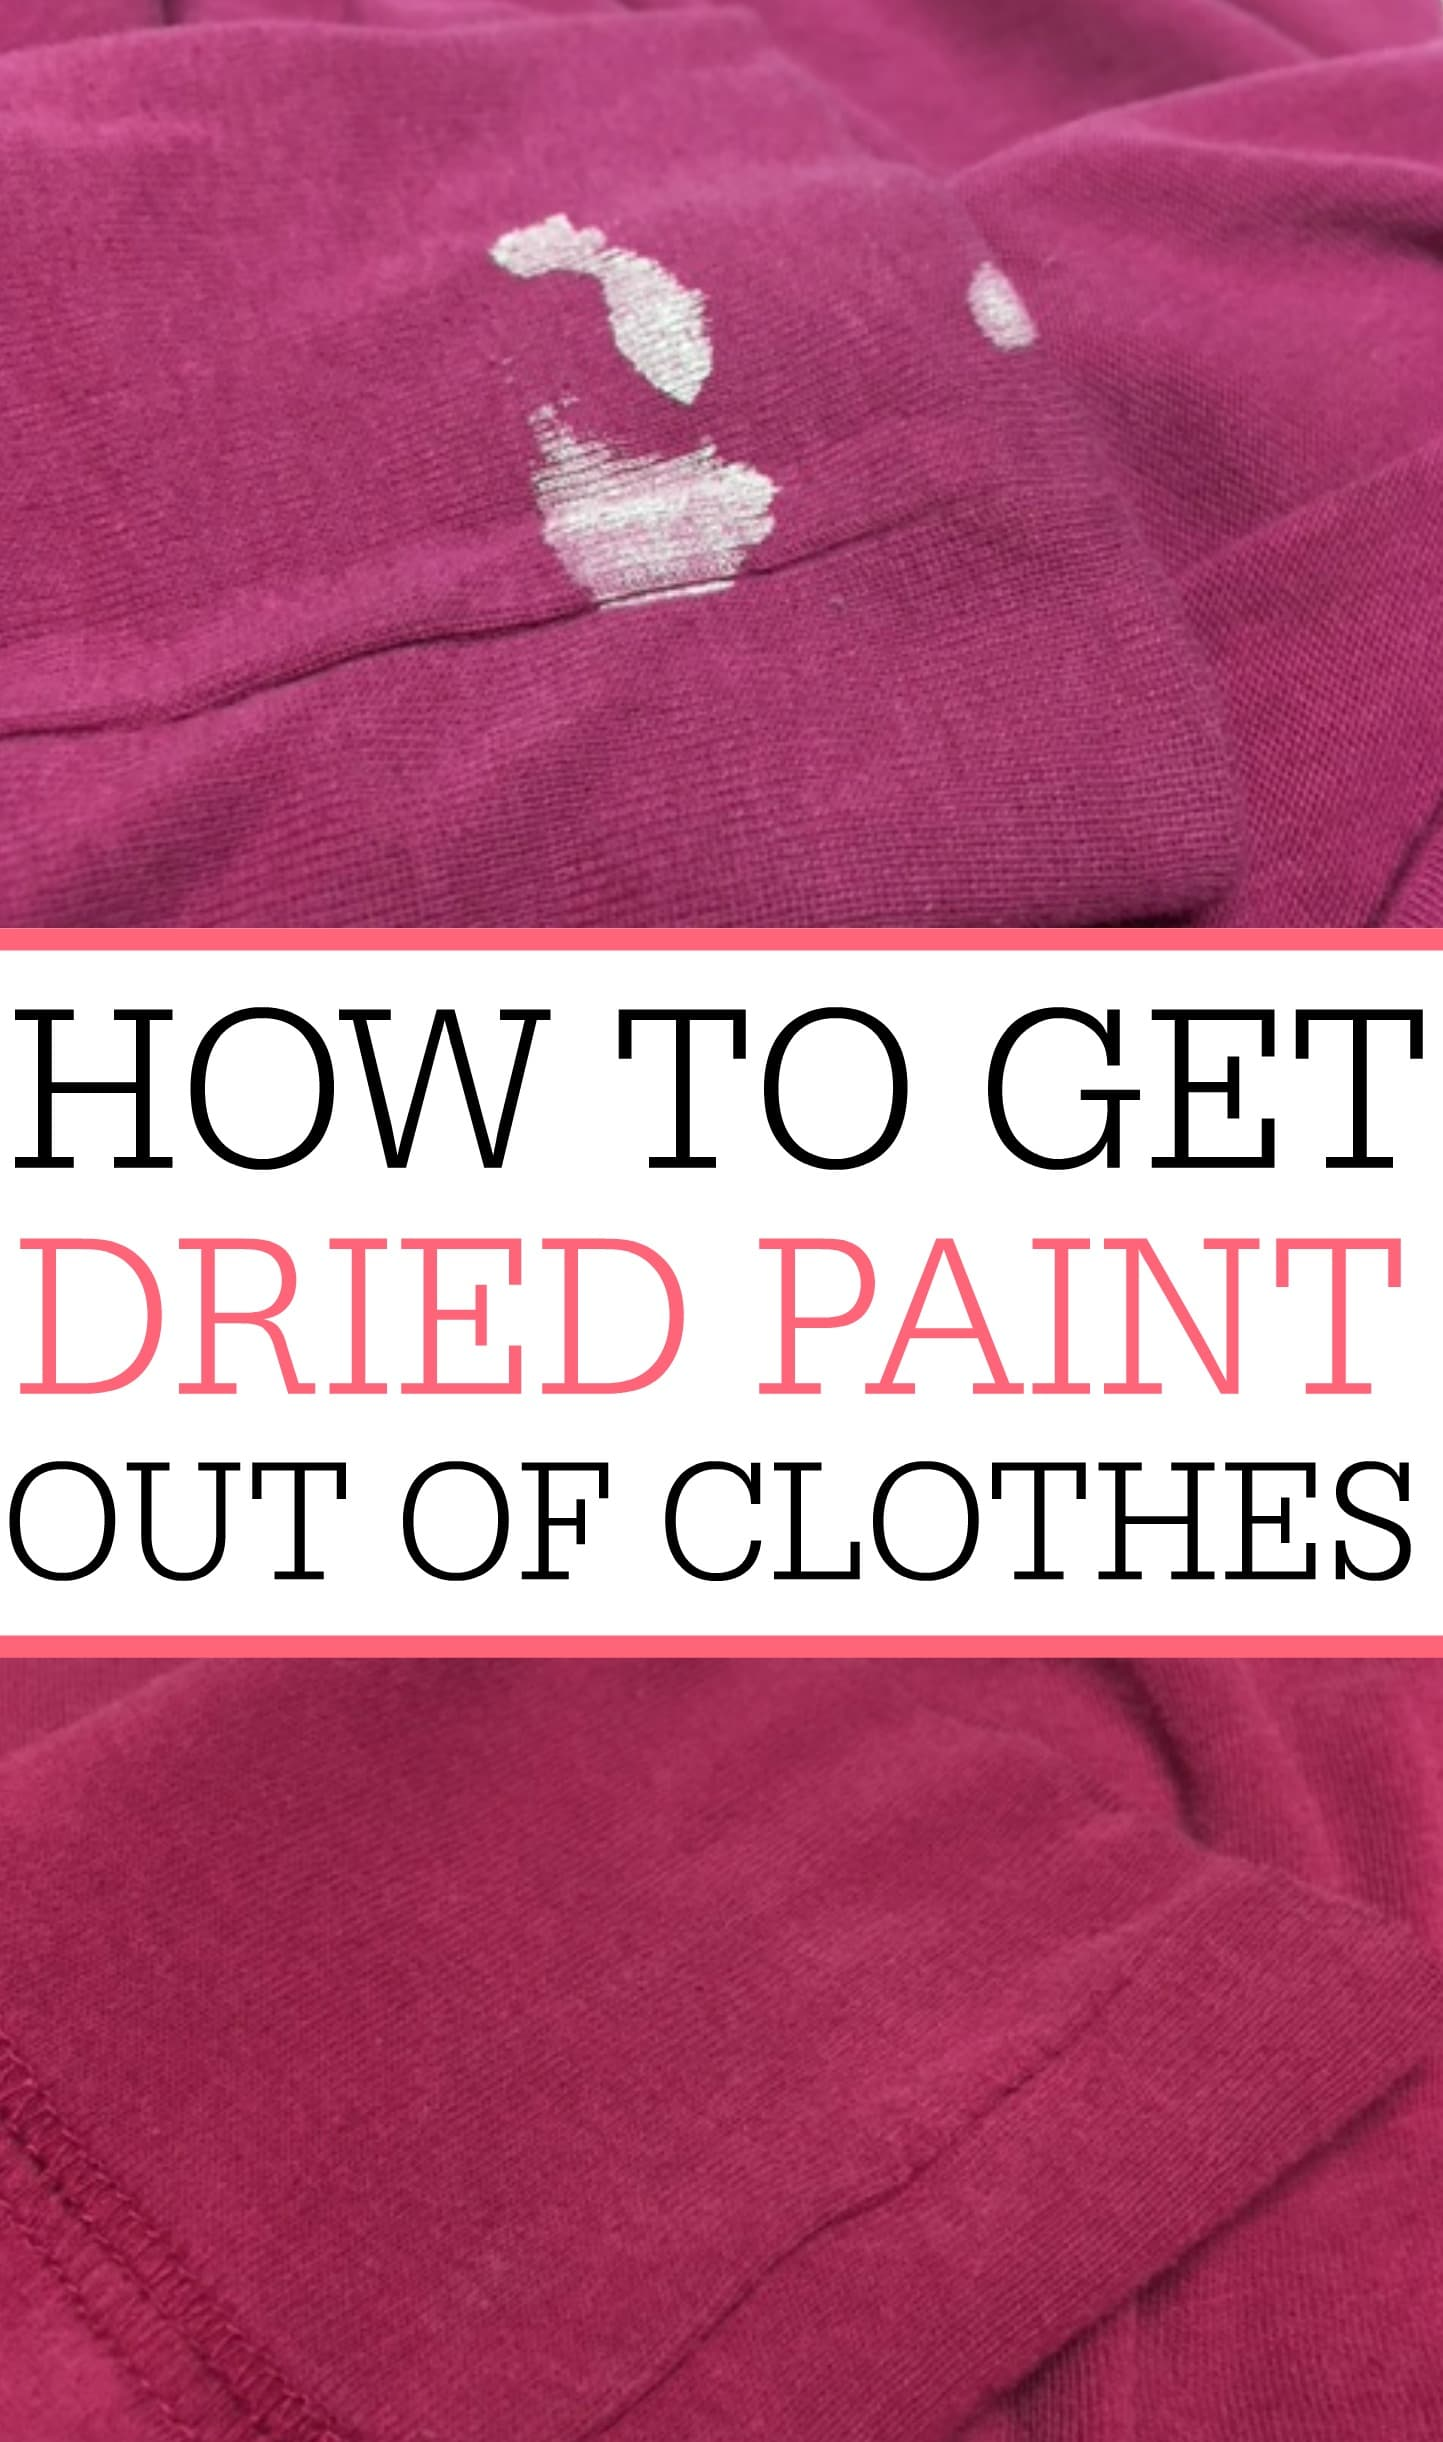 How To Get Rid Of Sewer Smell In Your House: How To Get Dried Paint Out Of Clothes